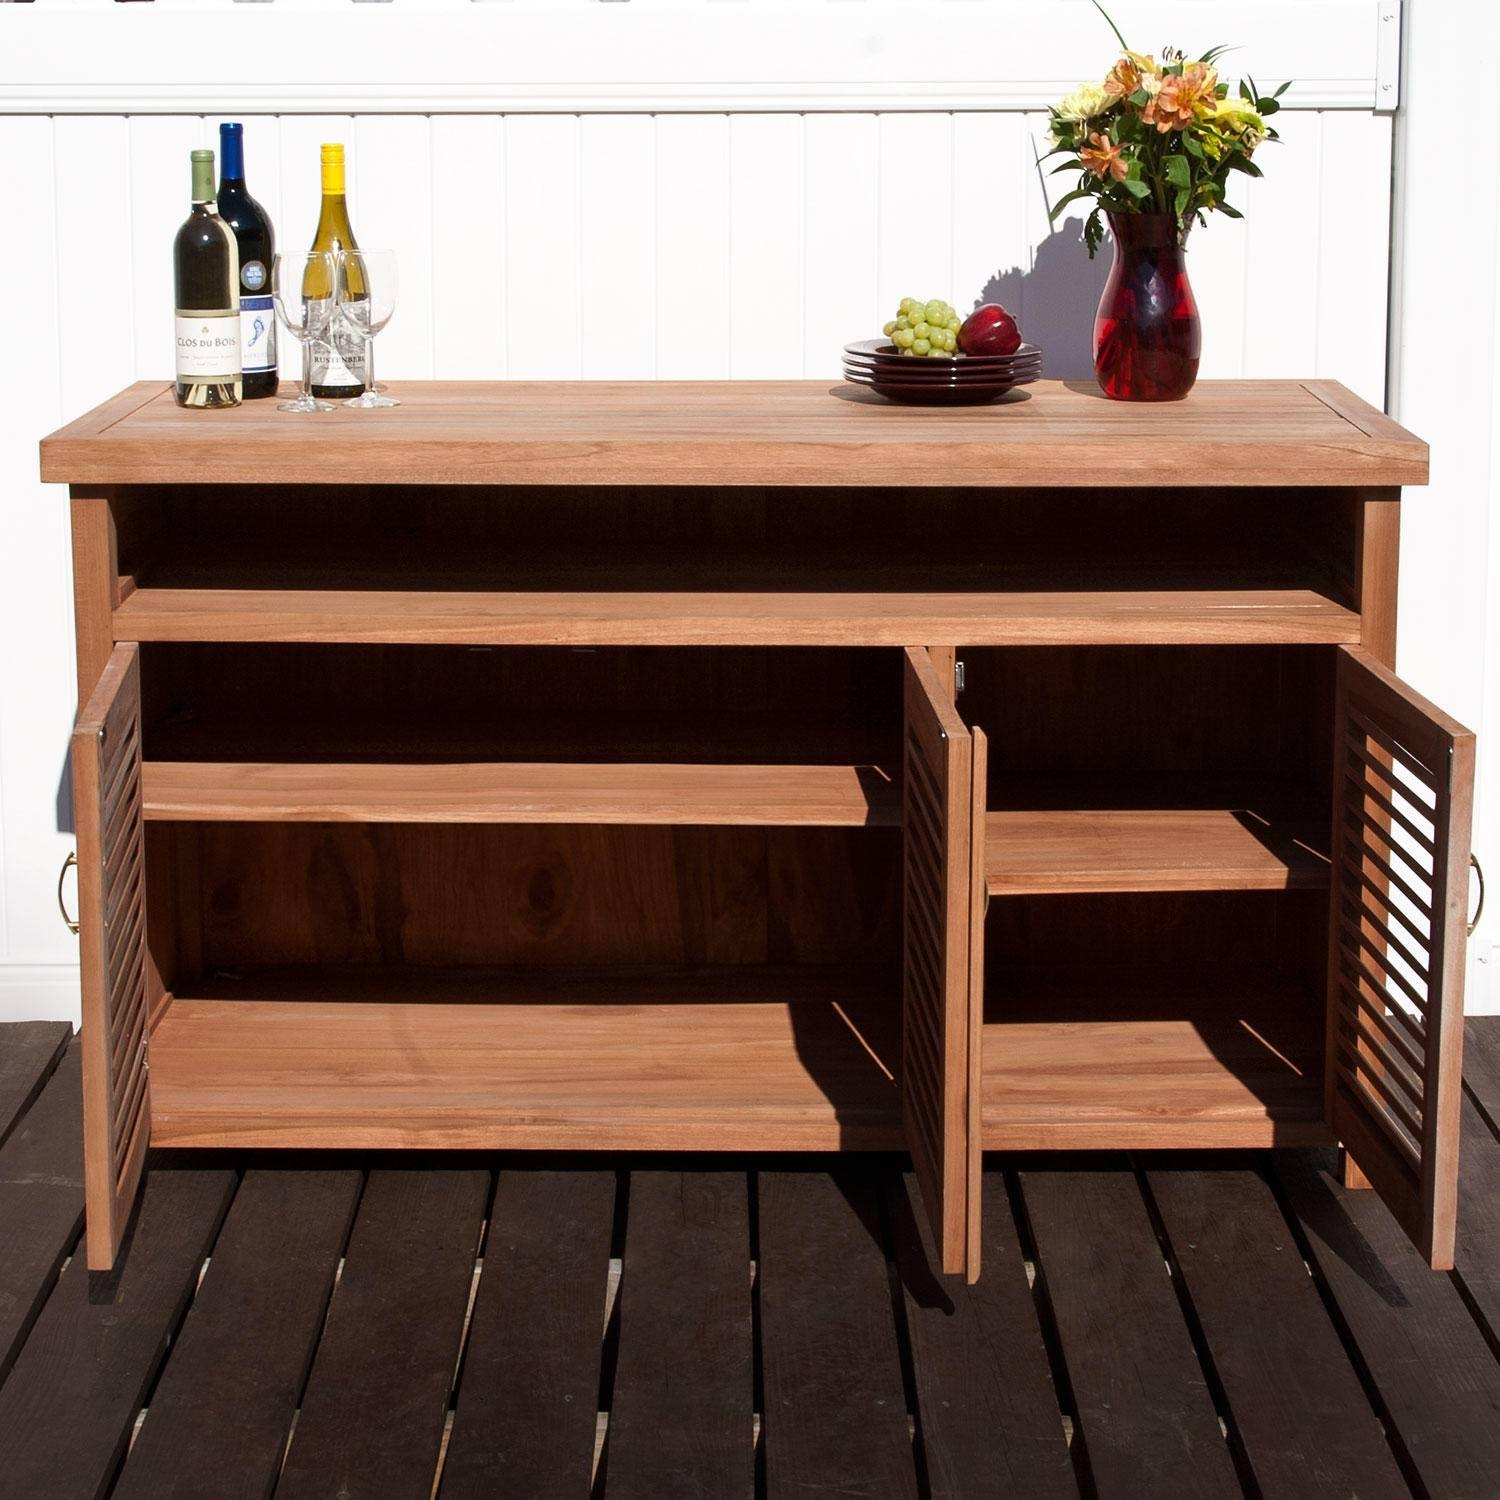 Teak Outdoor Buffet With Storage - Outdoor with Outdoor Sideboard Cabinets (Image 14 of 15)